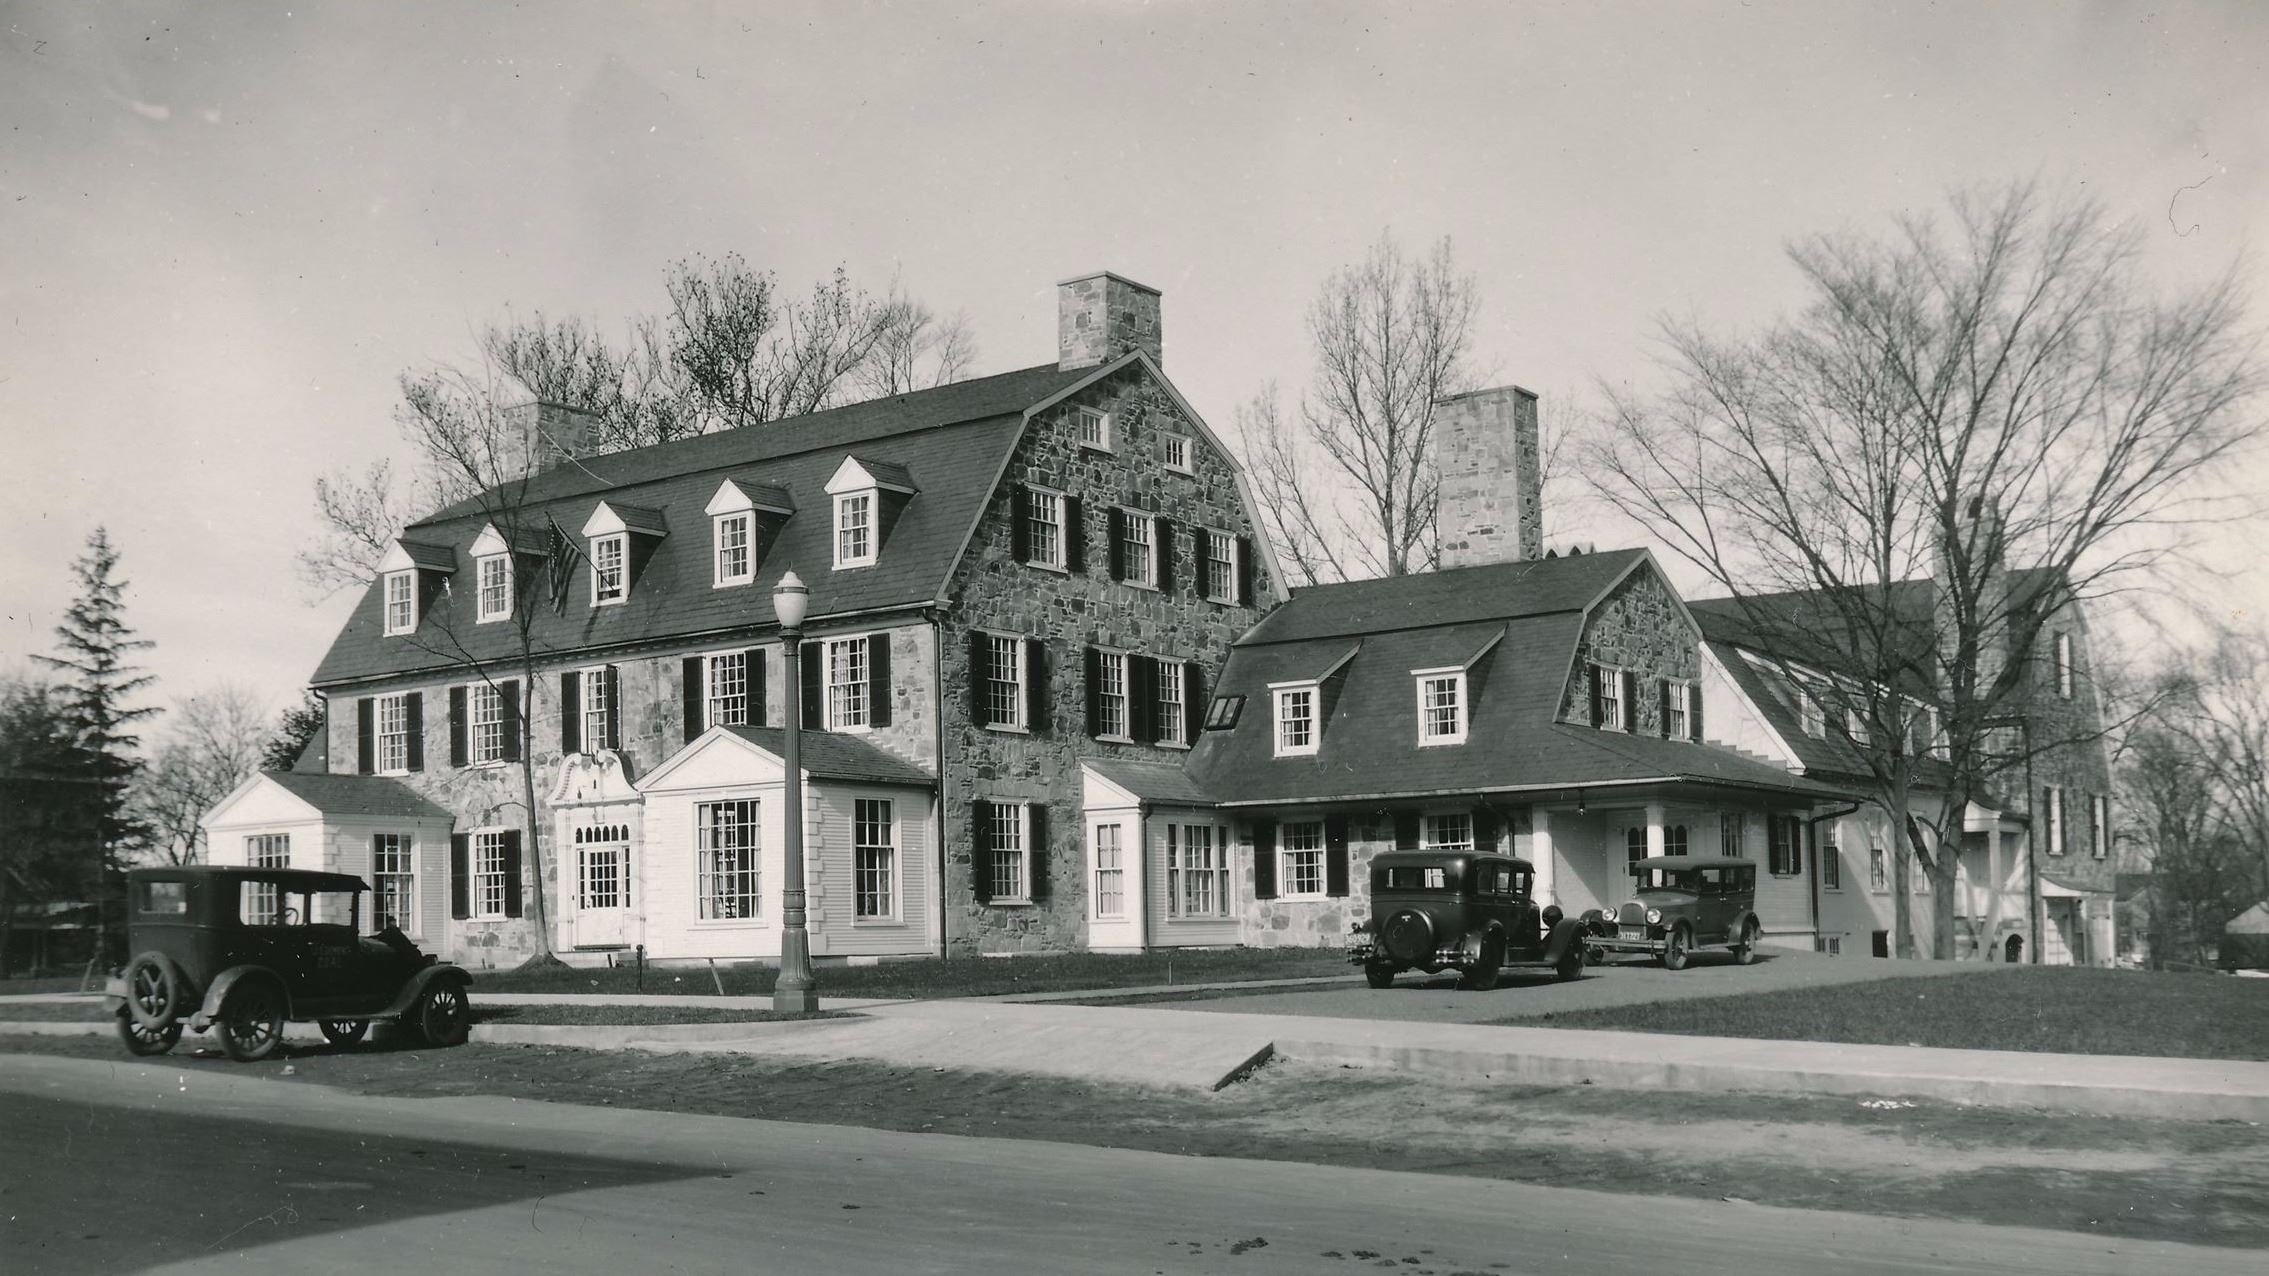 Jones Library exterior in 1932 with cars parked outside.